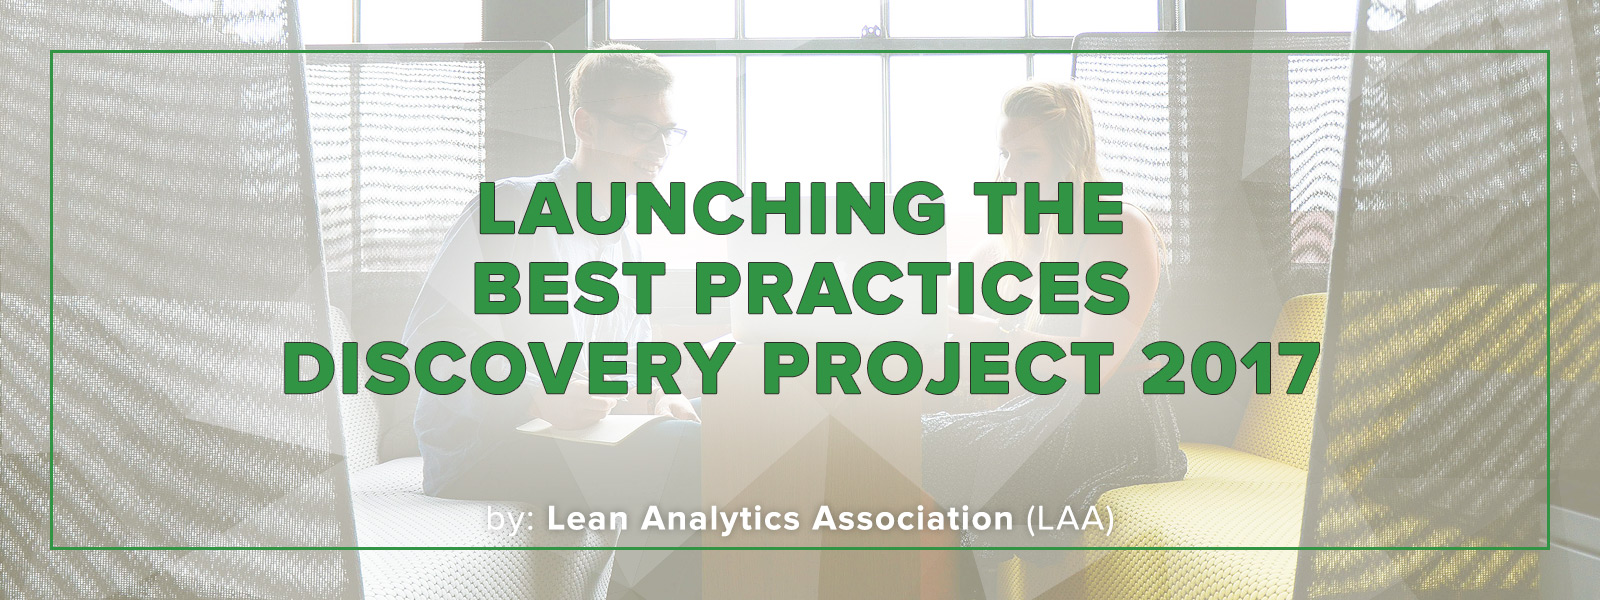 Launching the Best Practices Discovery Project 2017